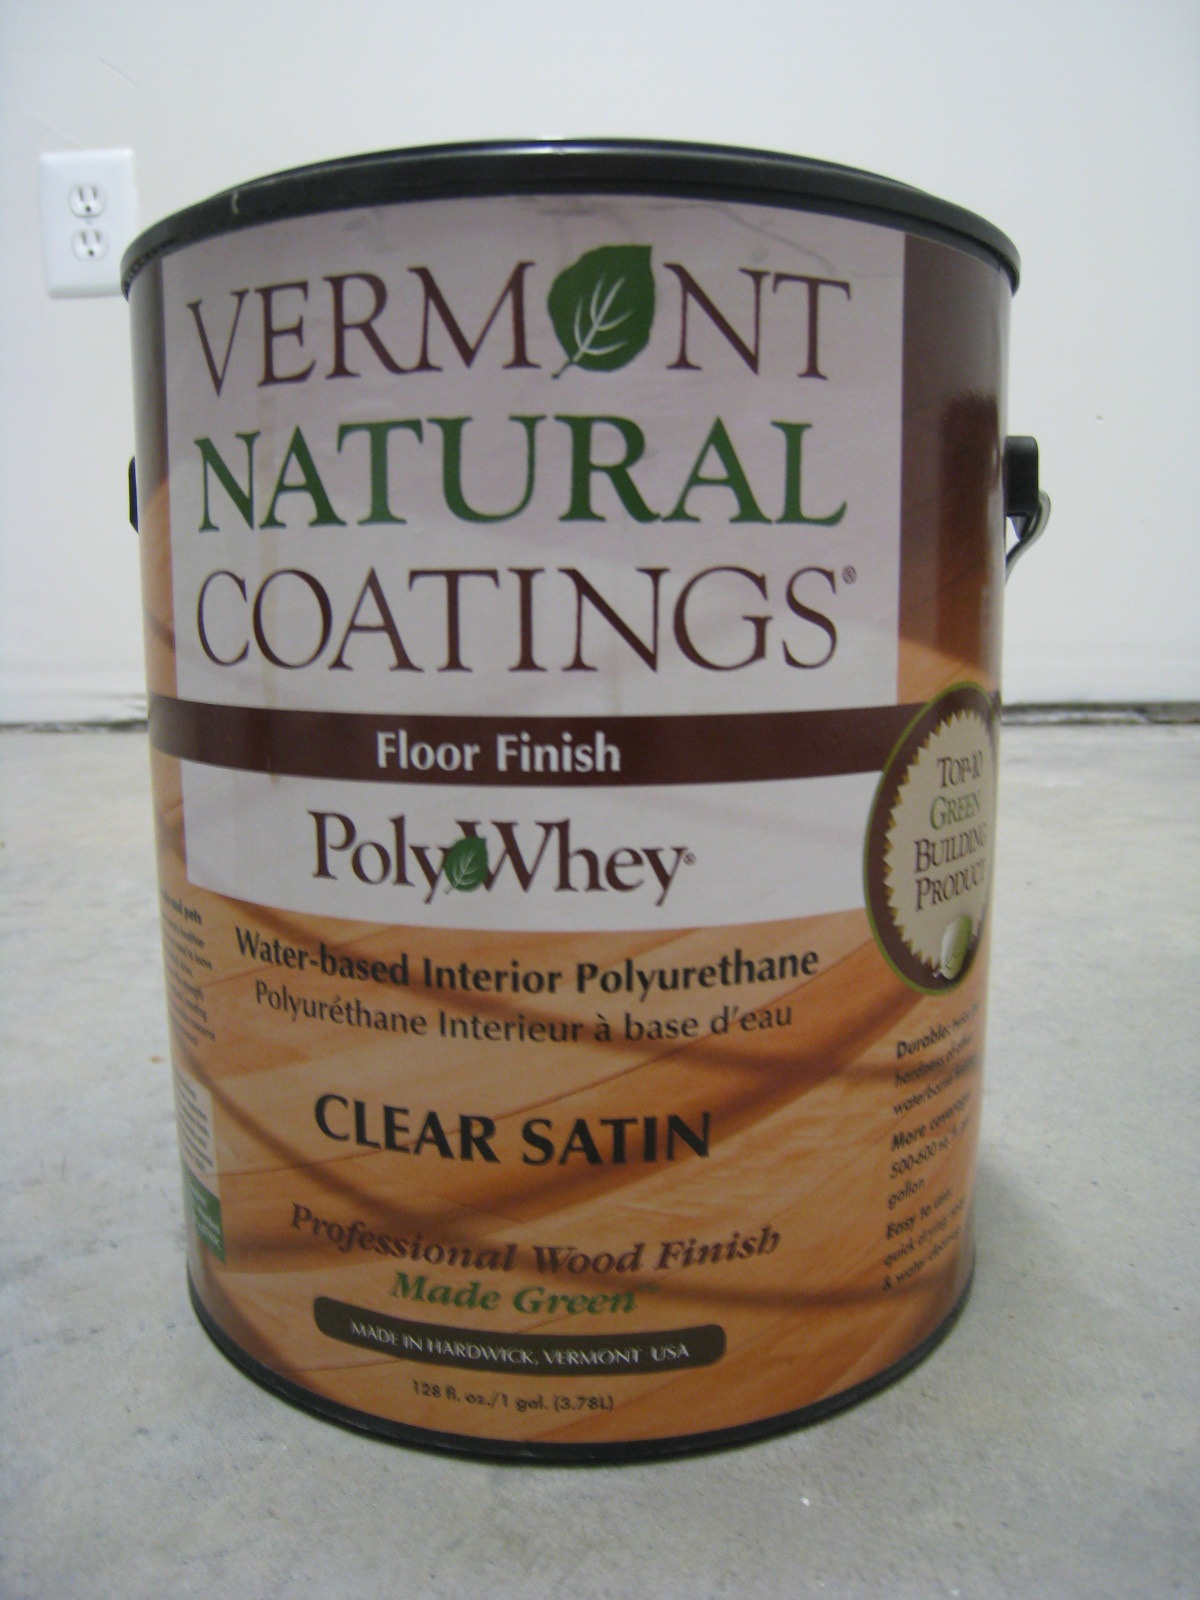 Vermont Natural Coatings PolyWhey